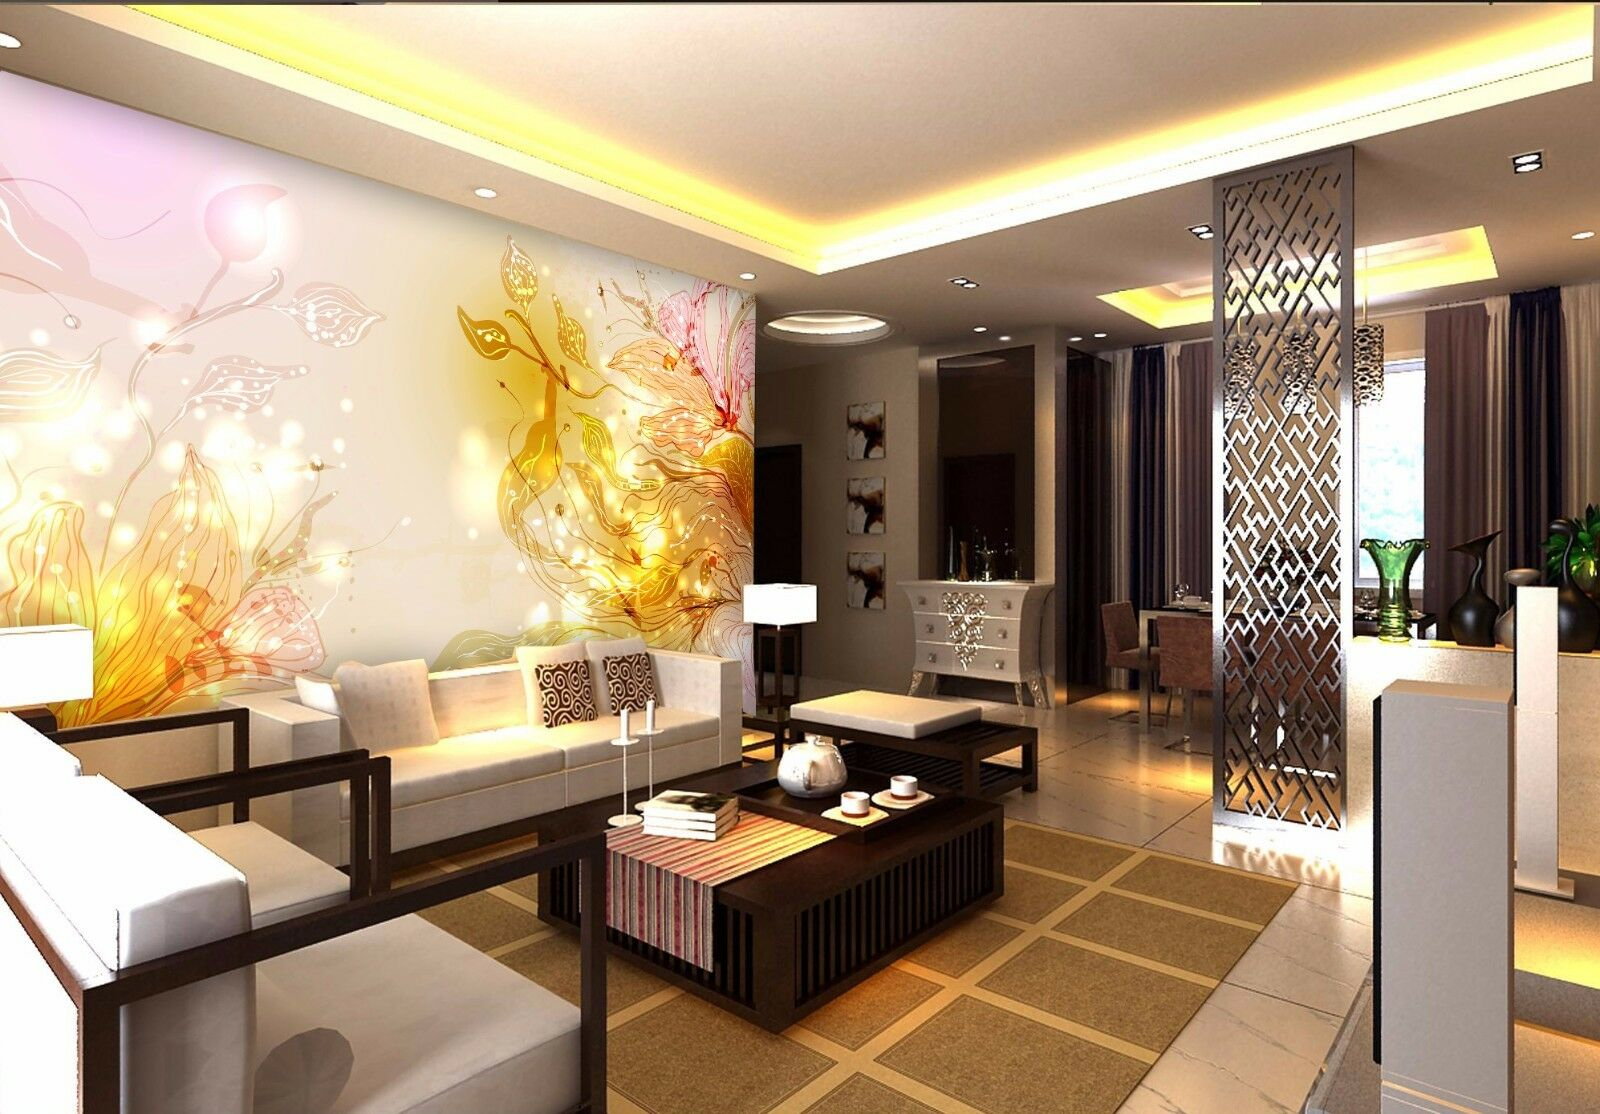 3D Luxury Gold Laces 8 Wall Paper Murals Wall Print Wall Wallpaper Mural AU Kyra